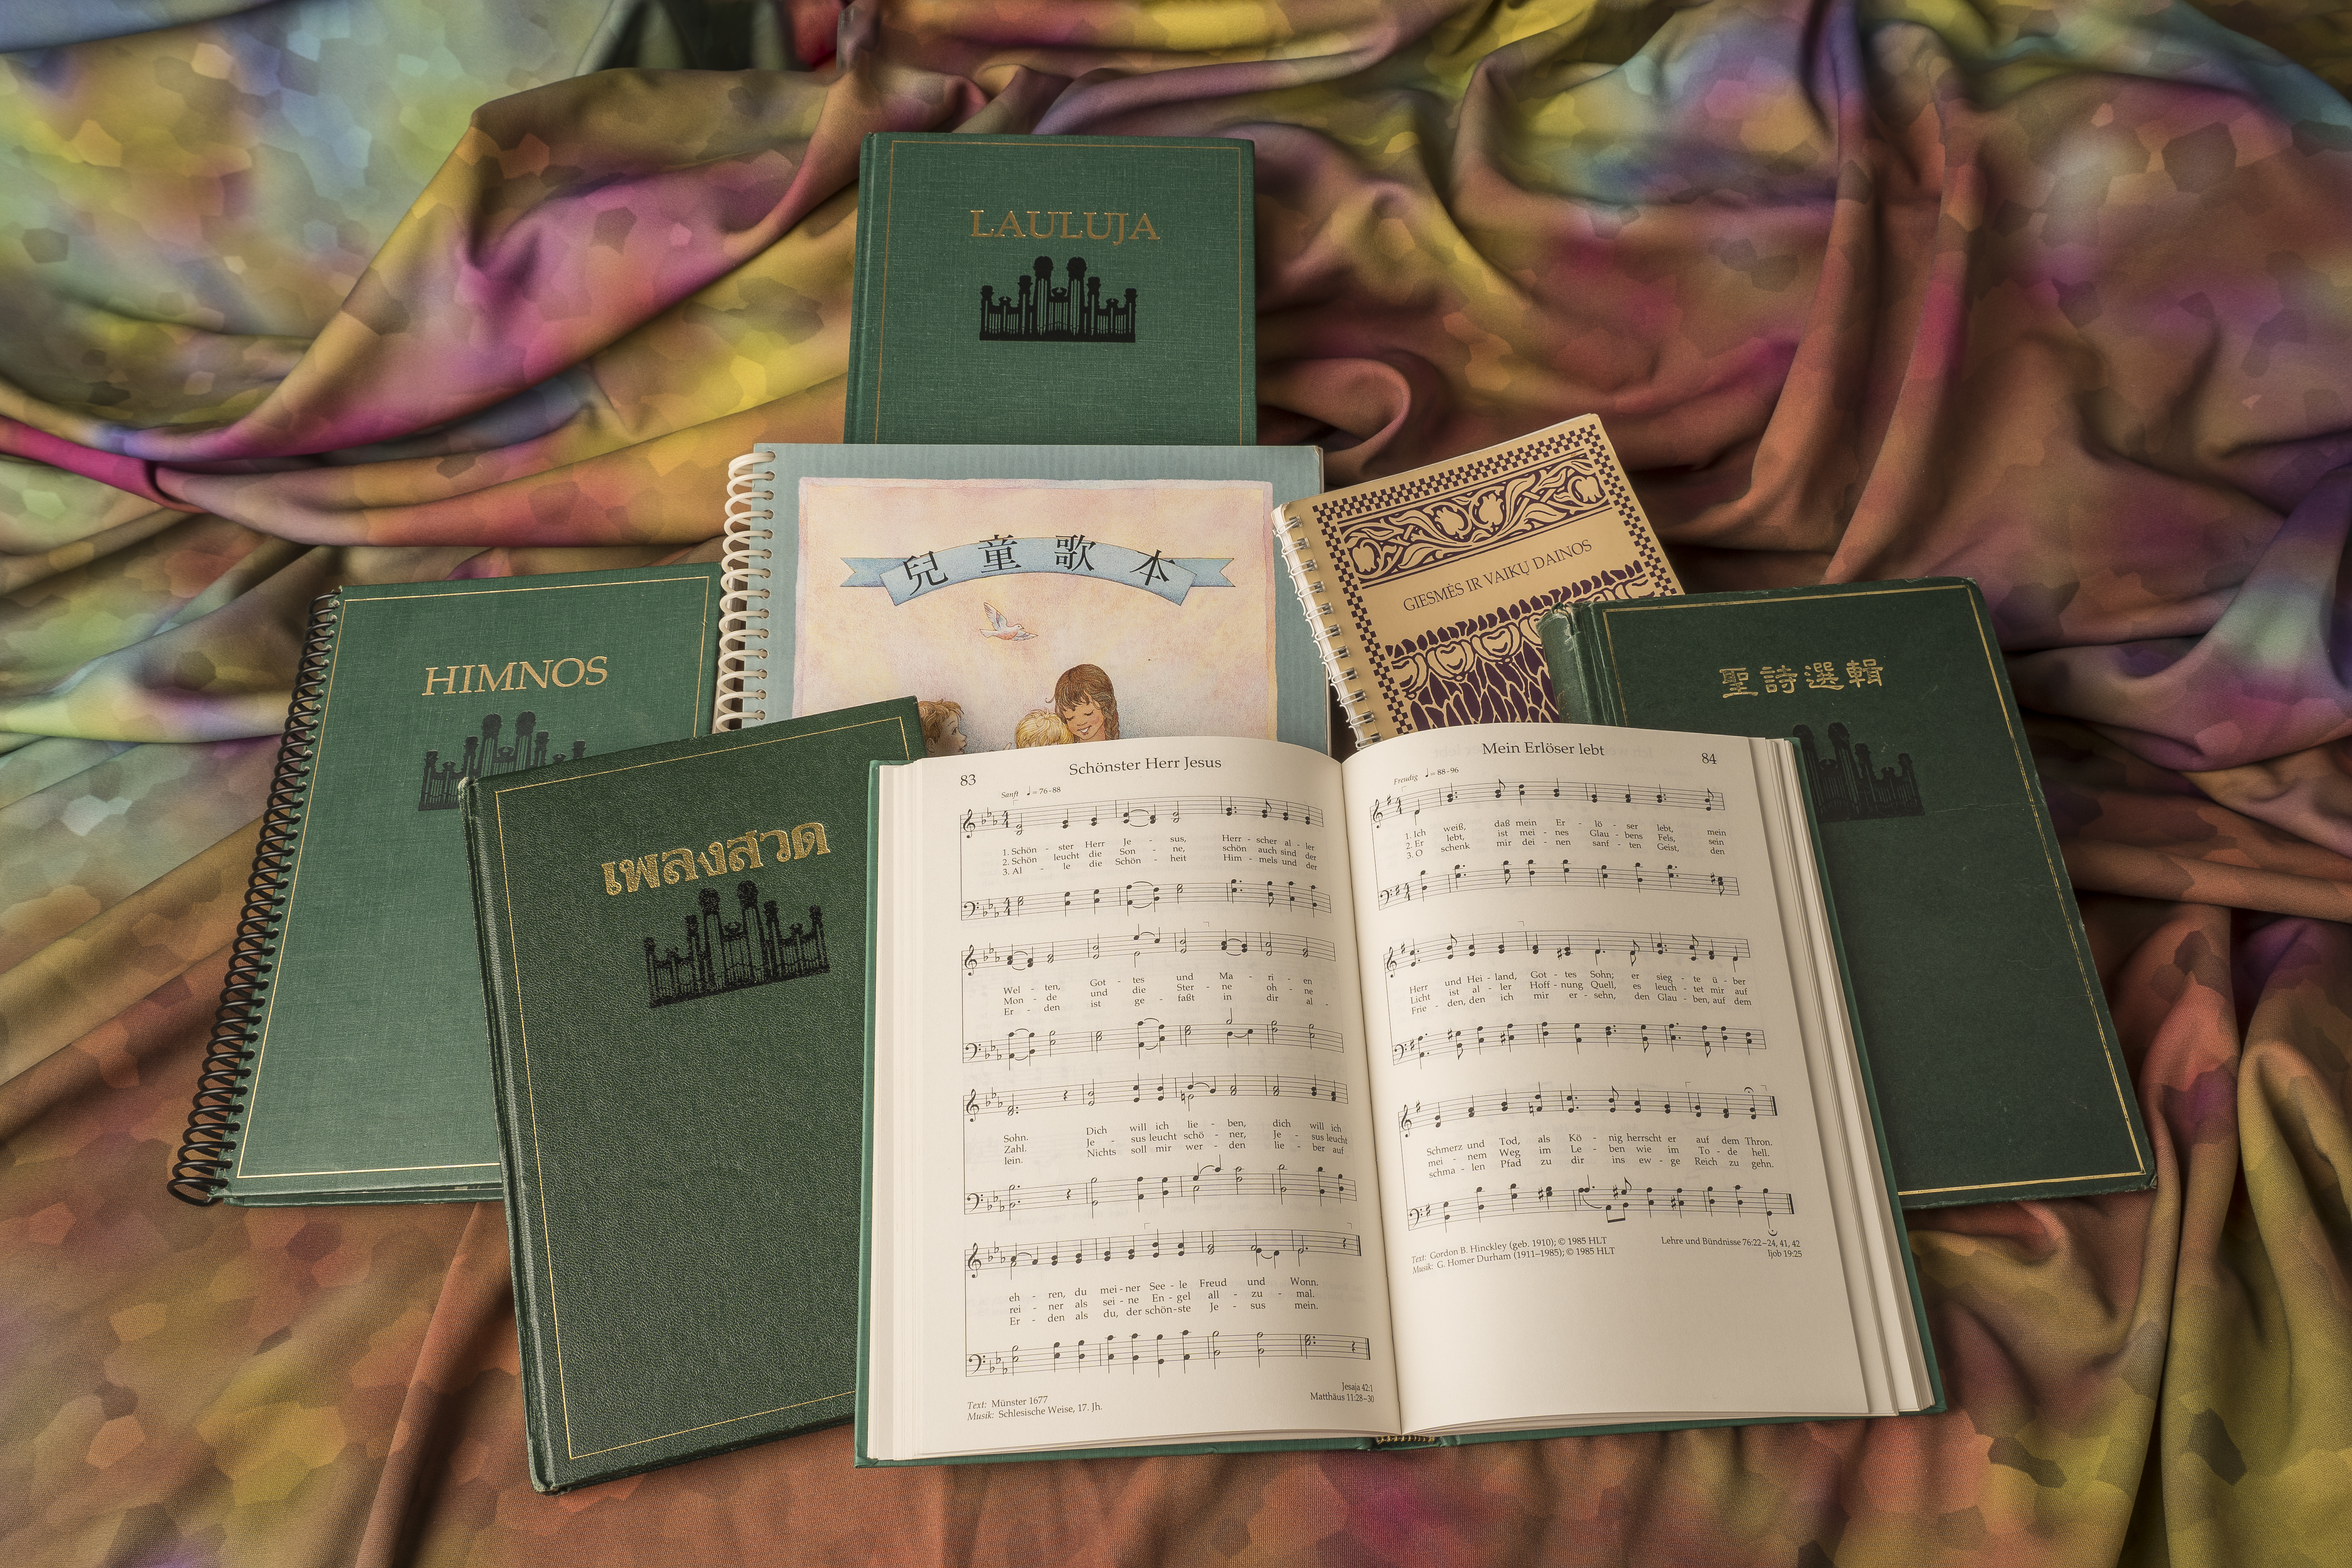 Various language versions of the current Hymns and Children's Songbook. The Church has announced it is revising the hymnbook and children's songbook and invites members to participate.